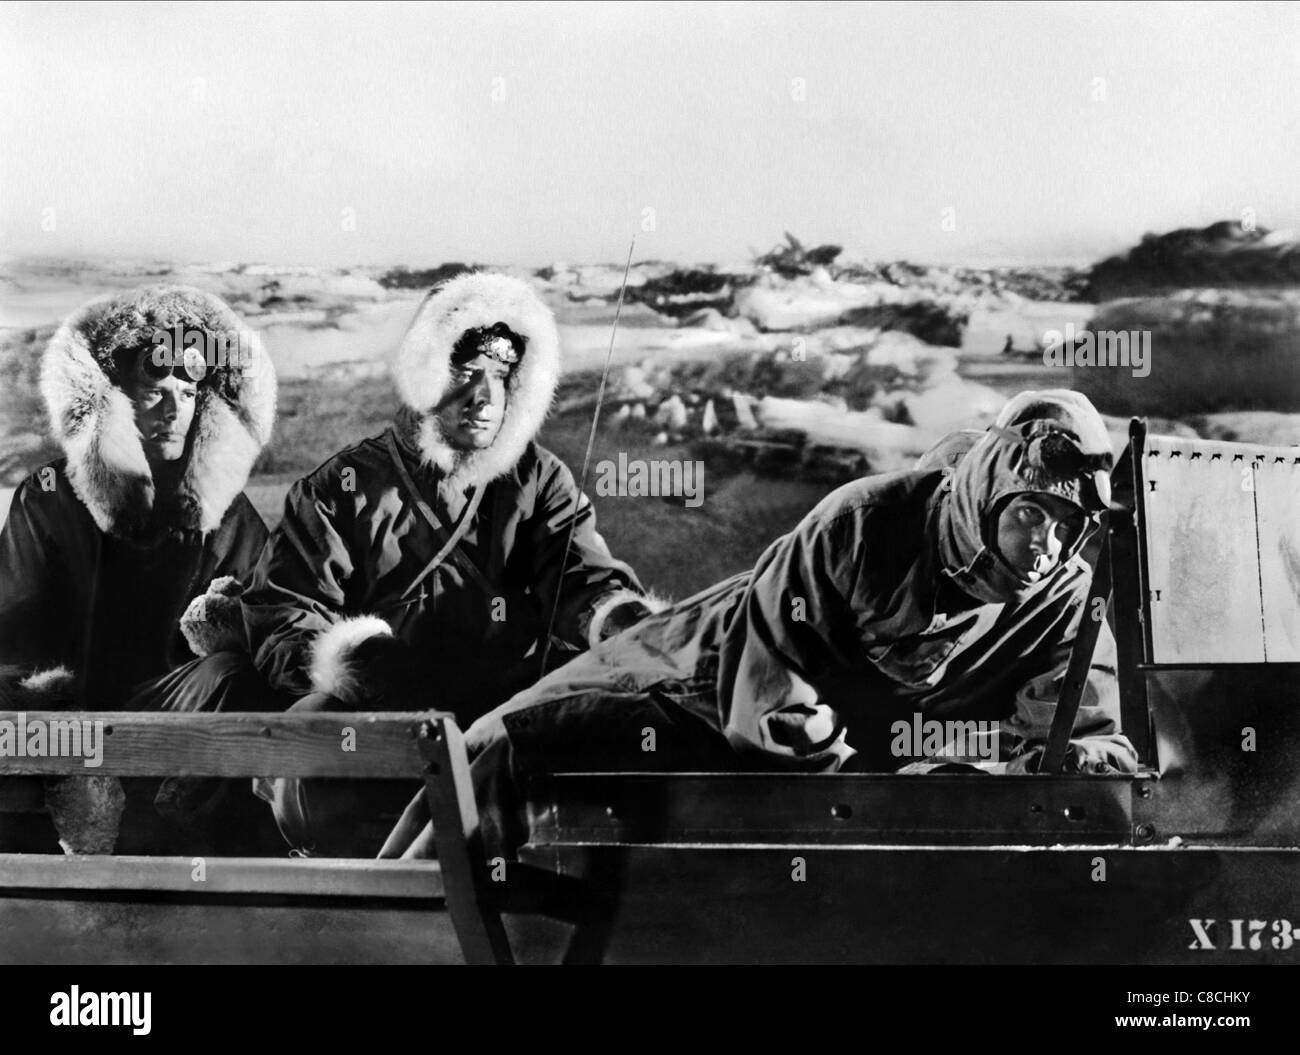 MOVIE SCENE THE BEAST FROM 20 000 FATHOMS (1953) - Stock Image